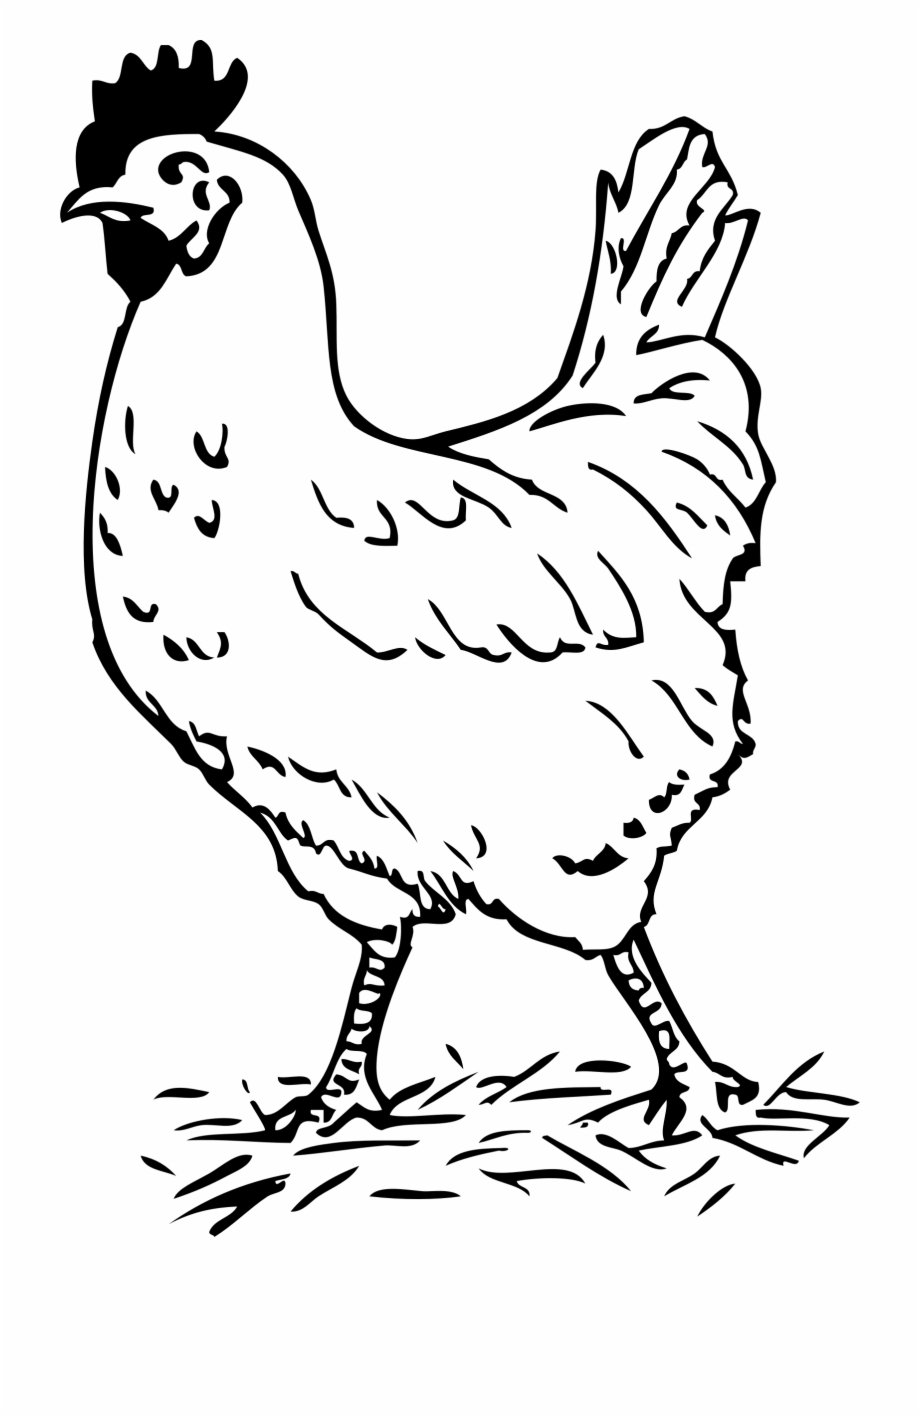 Life is better with chickens around clipart black and white clip art download Clipart Black And White Chicken - Hen Black And White Free PNG ... clip art download